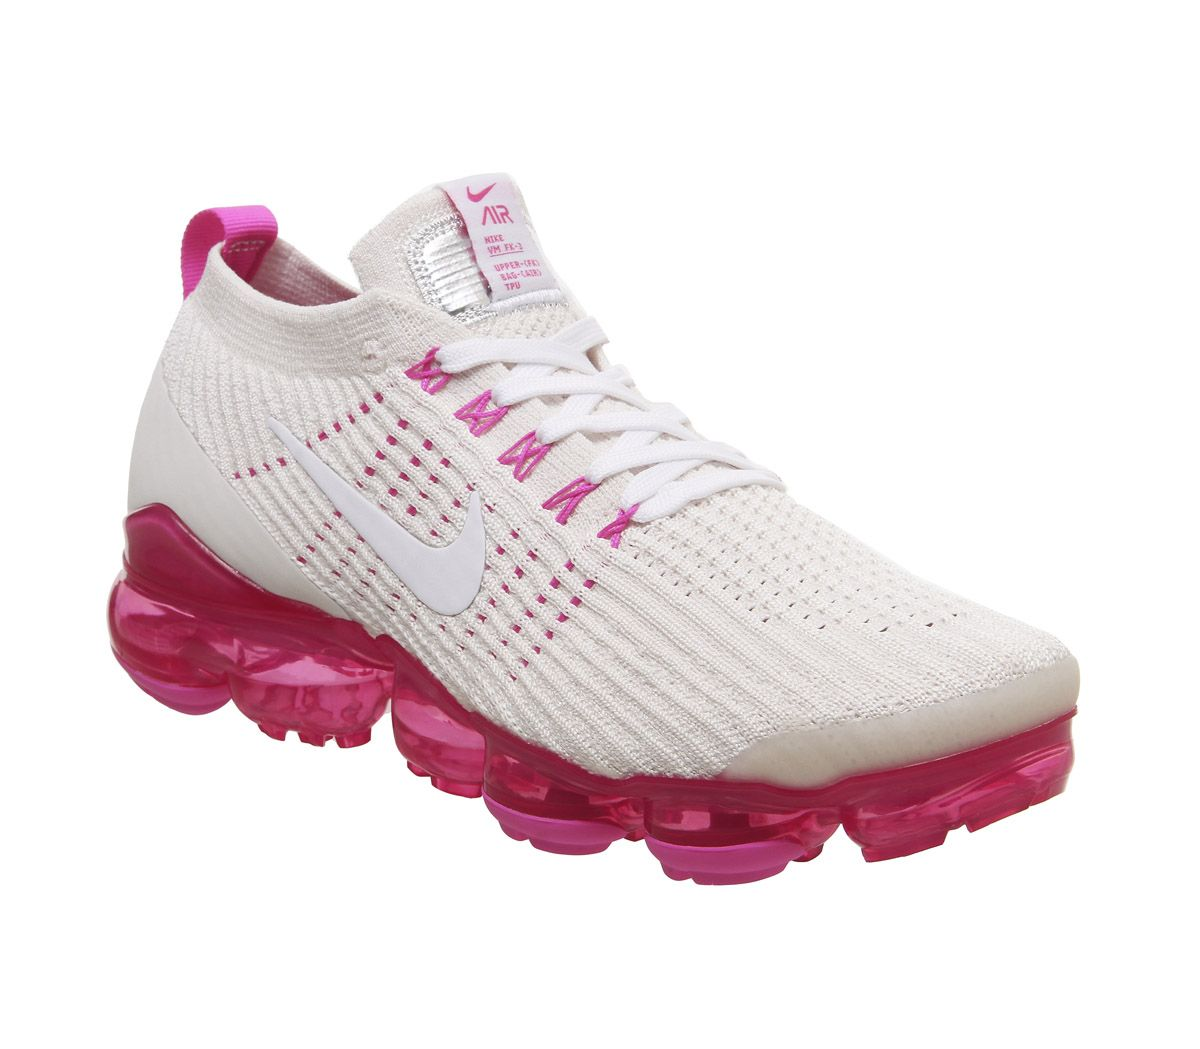 huge selection of 3eb76 3e815 Air Vapormax Fk 3 Trainers